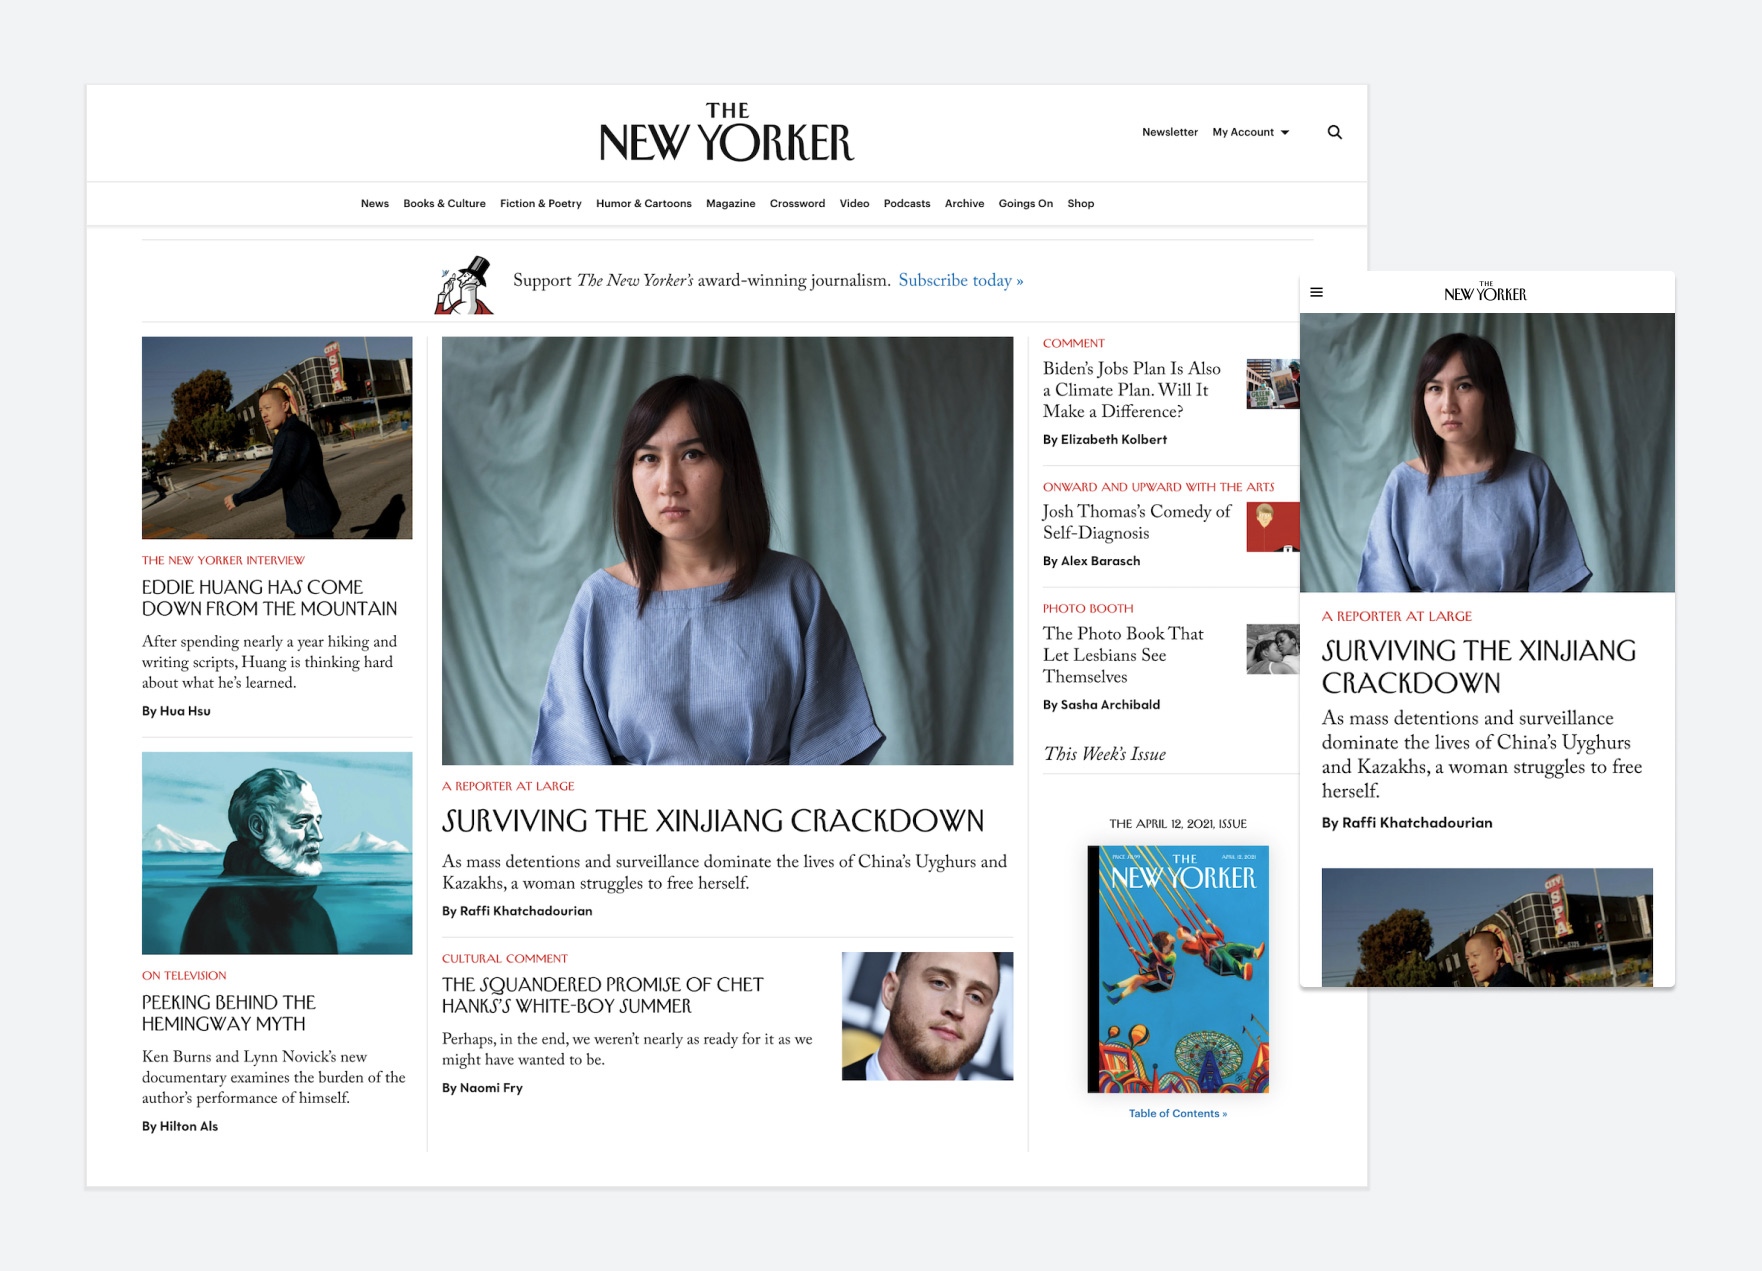 the new yorker homepage redesign